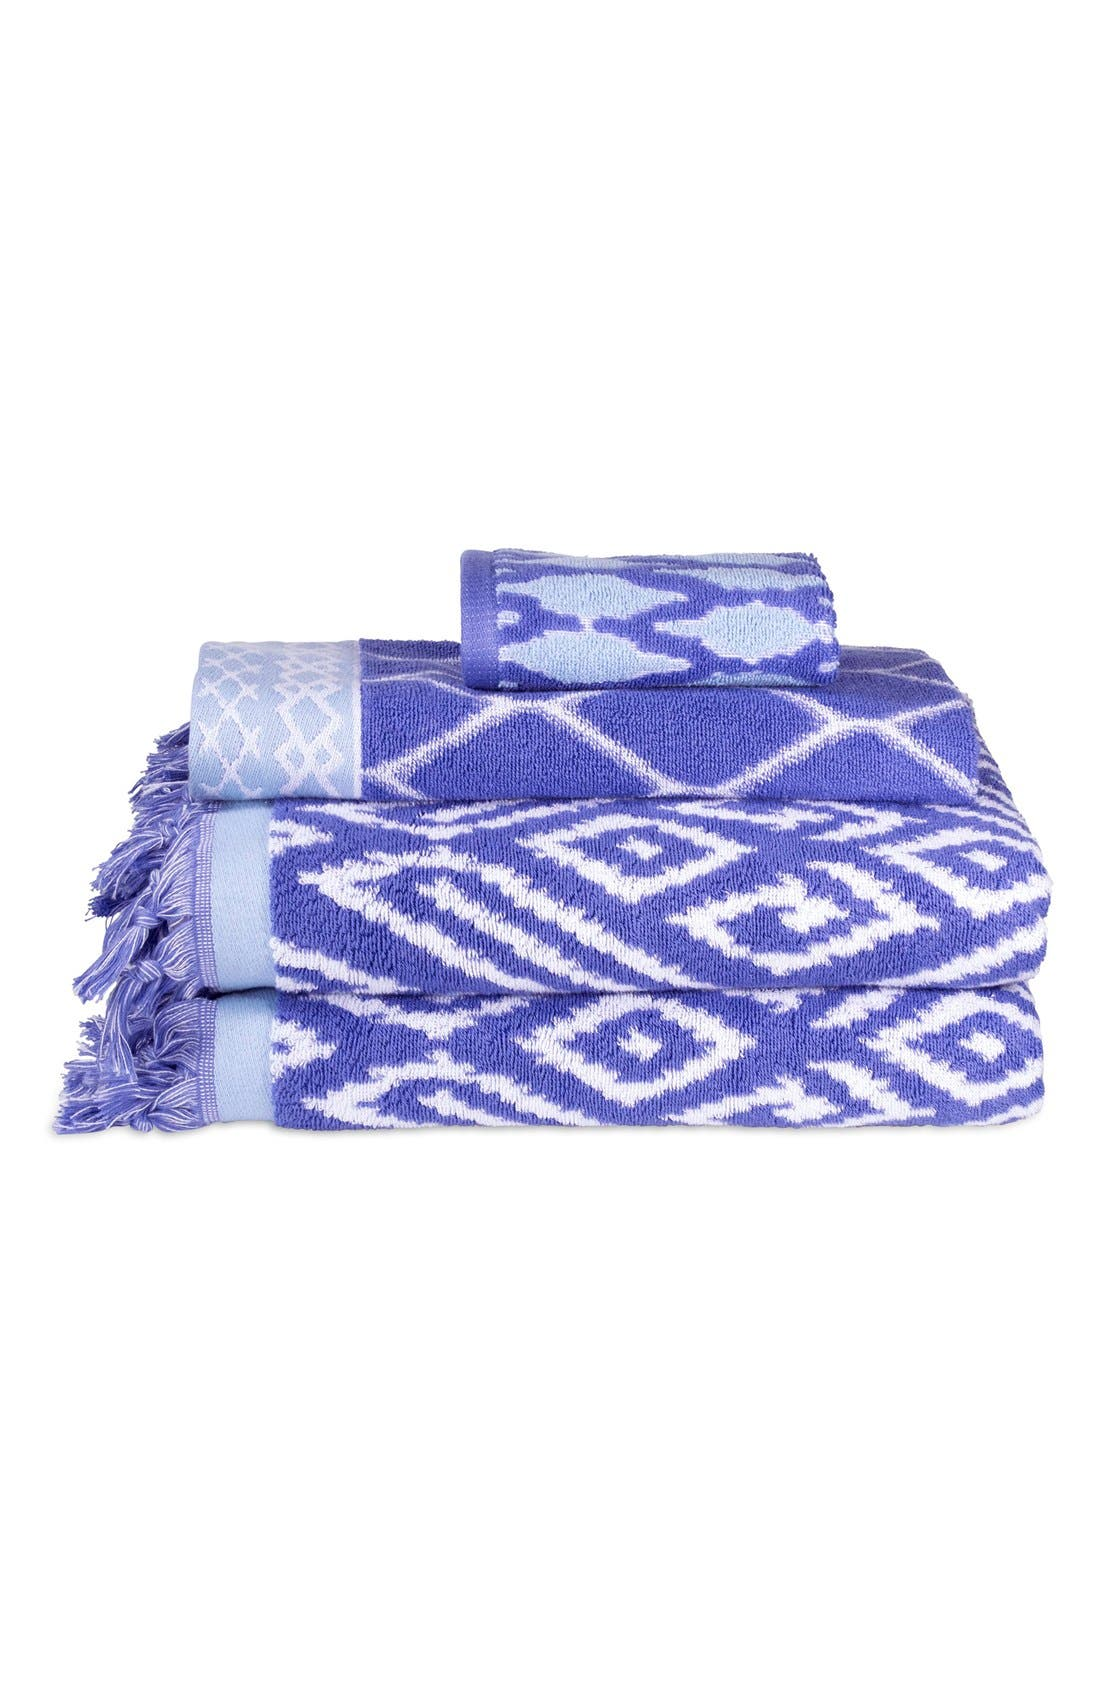 Main Image - John Robshaw 'Kalasin' Turkish Cotton Bath Towel